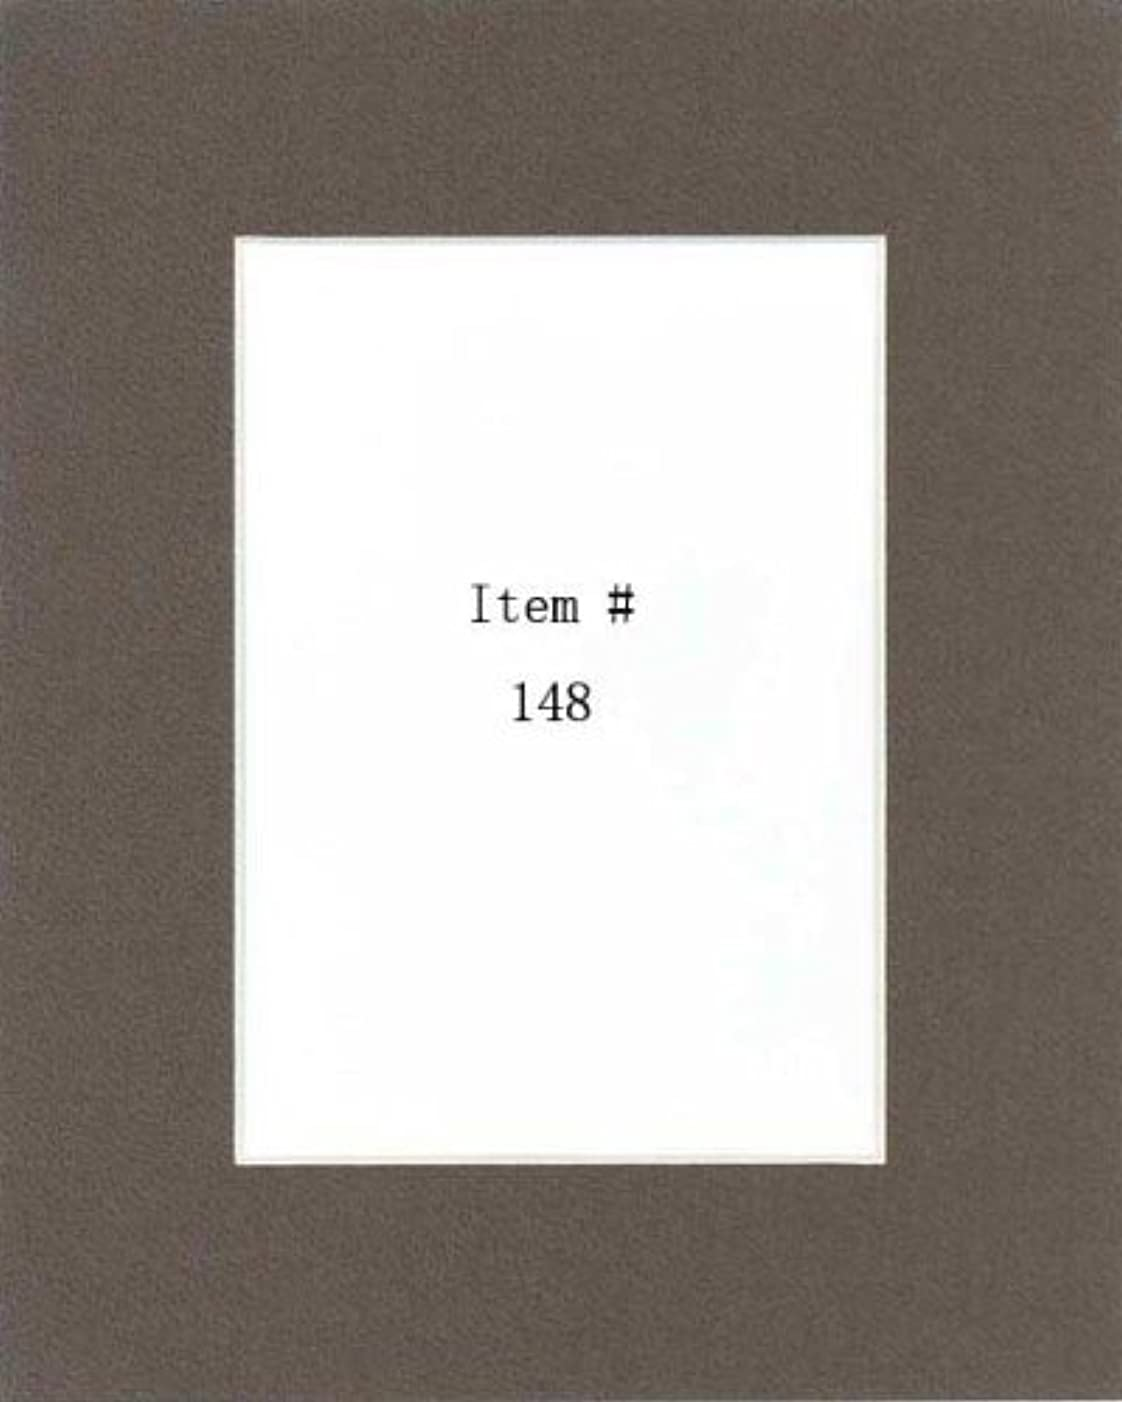 Pack of 100 8x10 Well-Bred Brown Picture Mats Mattes with White Core Bevel Cut for 5x7 Photo